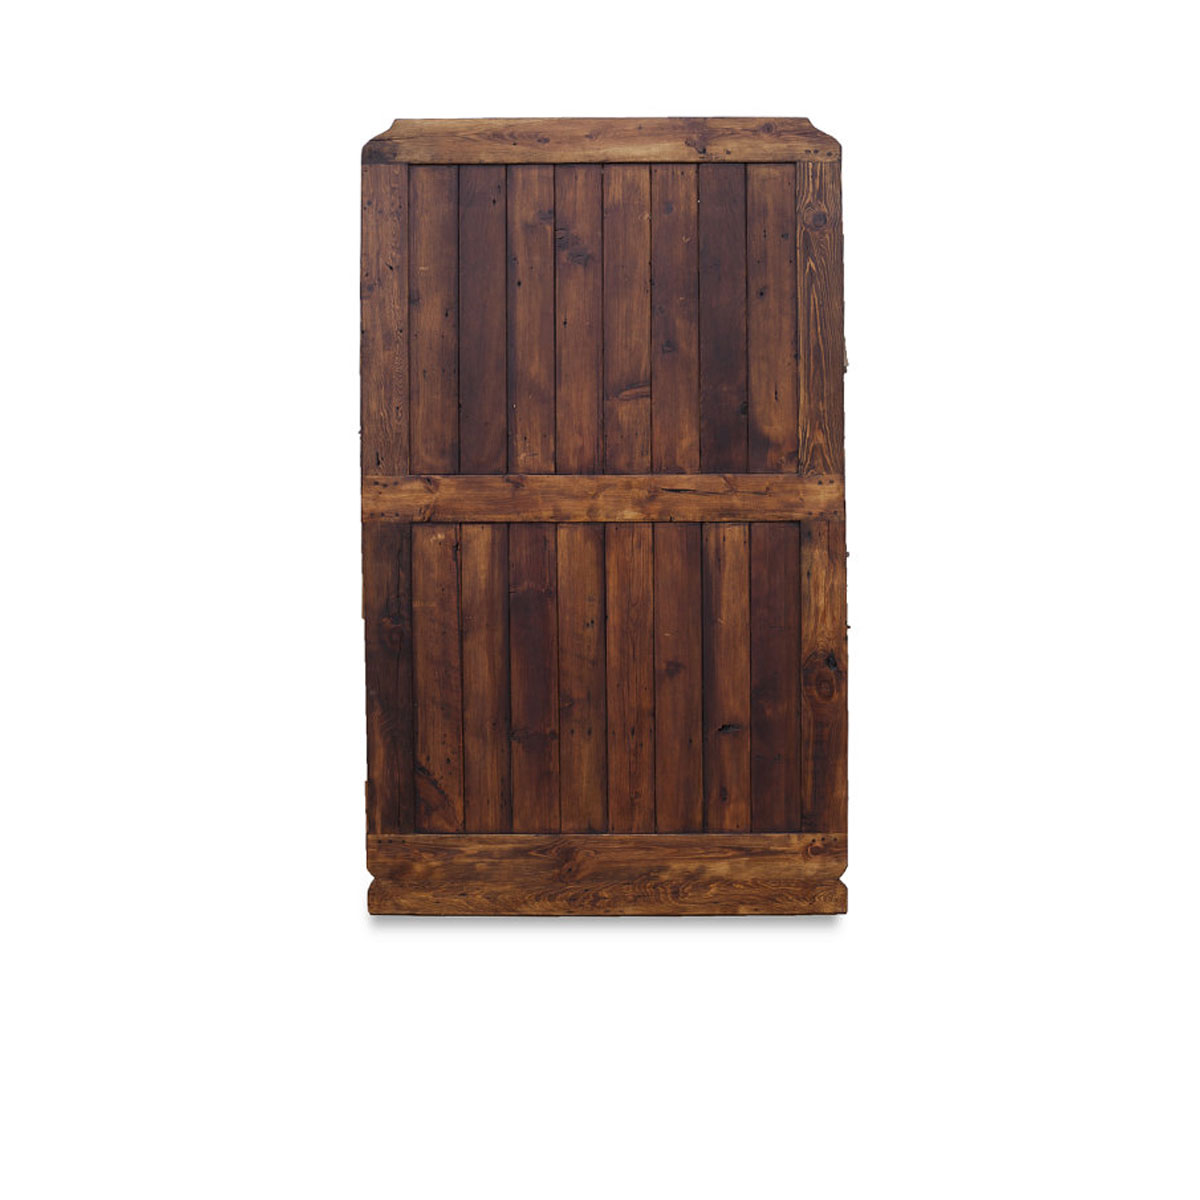 purchase barn door sliding interior online. Black Bedroom Furniture Sets. Home Design Ideas